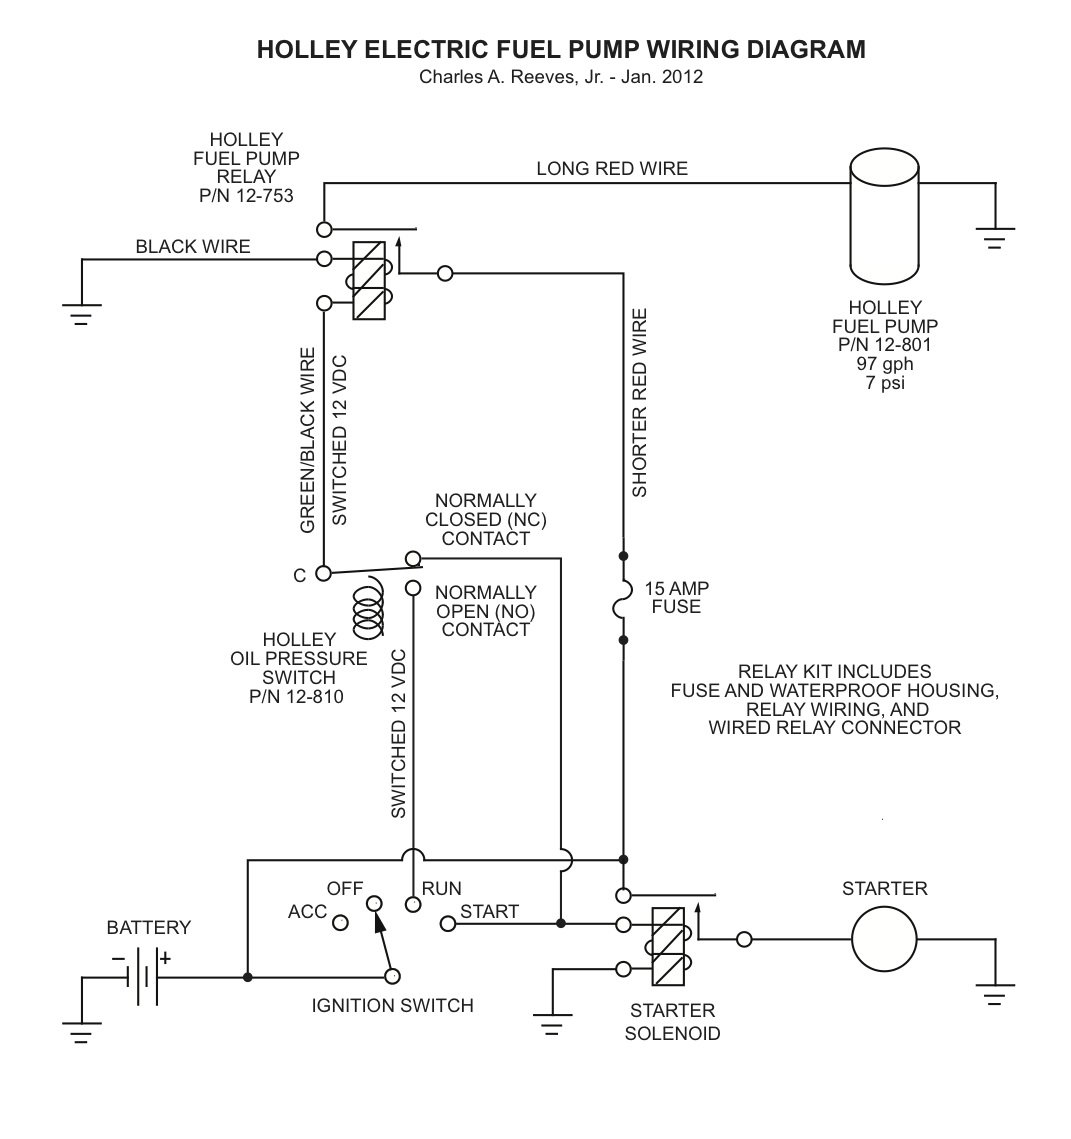 146291d1325616423 installing holley electric fuel pump 1966 mustang elect fuel pump wiring diagram installing a holley electric fuel pump in a 1966 mustang ford mustang fuel system diagram at bayanpartner.co